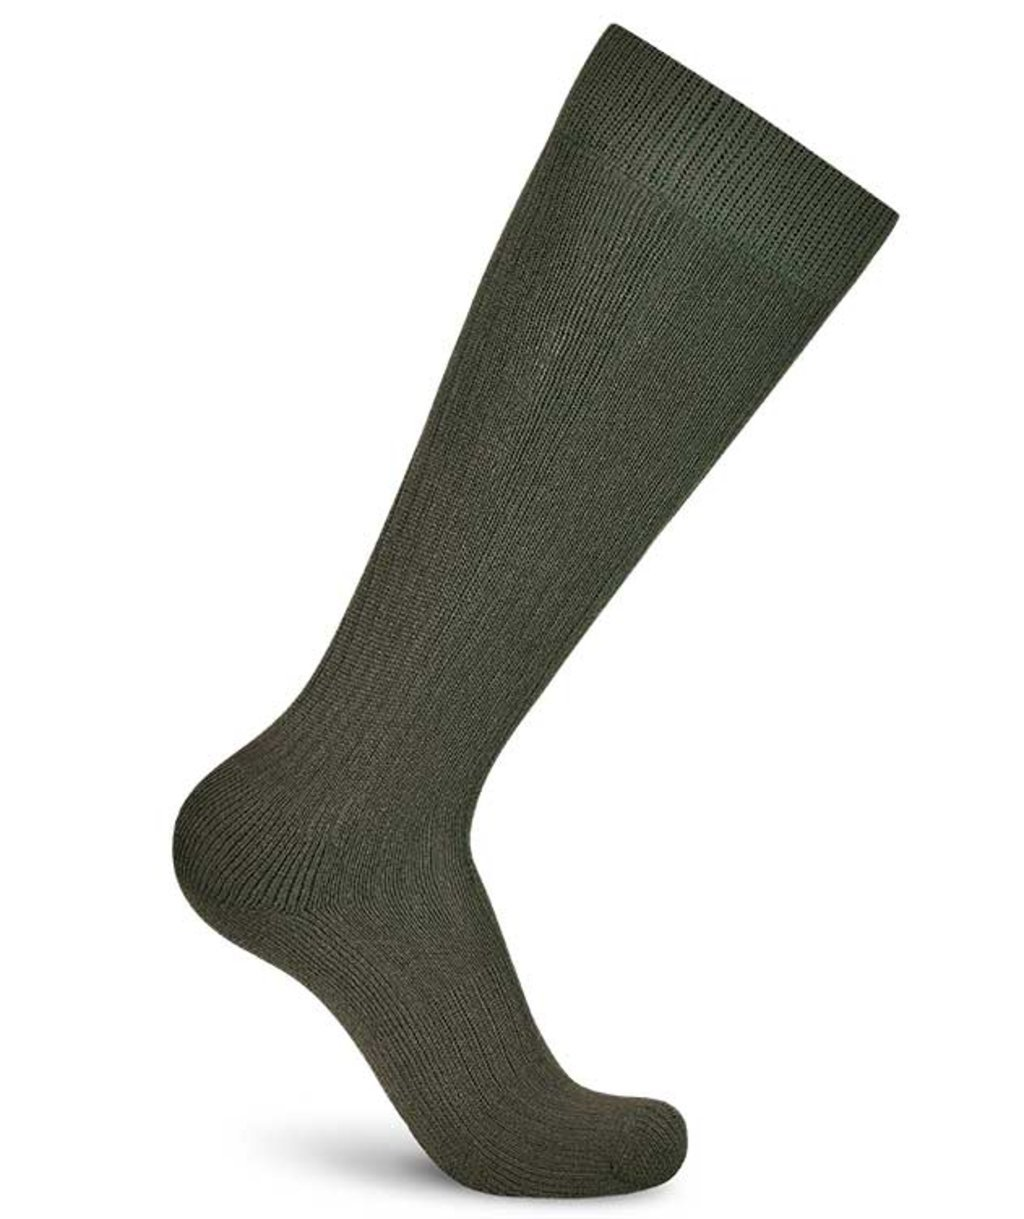 Worik Norway compression socks with merino wool, Army Green